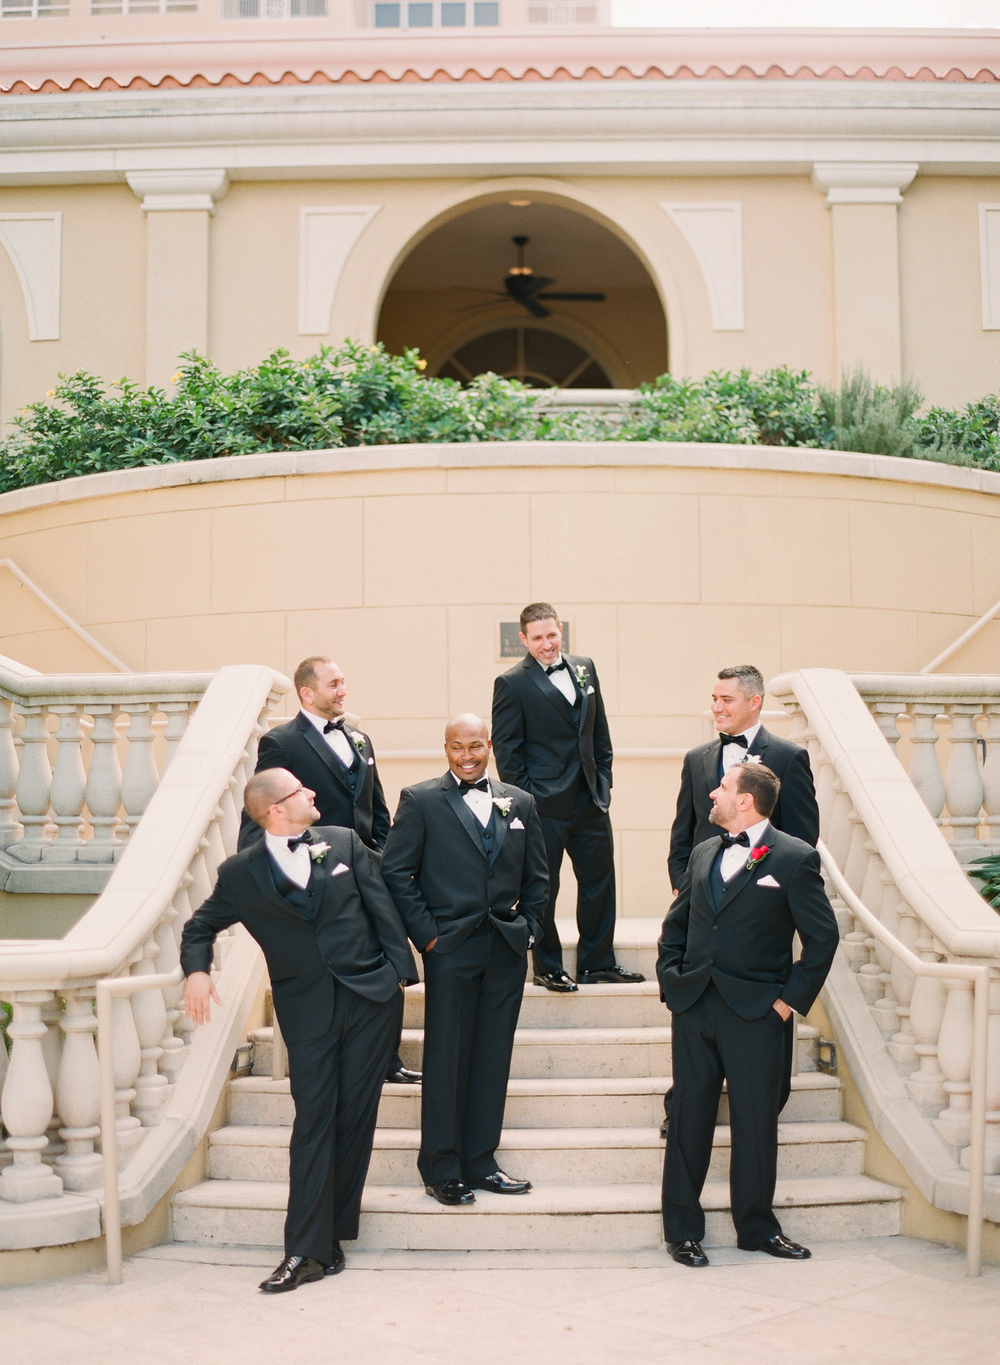 Destination Wedding Photographer Lexia Frank is a film photographer on the west coast specializing in luxury weddings and fine art film photography. In this article she writes a letter to the groom, and talks about the groom's role in photography. Groomsmen pose at the Ritz Carlton in Florida wedding www.lexiafrank.com